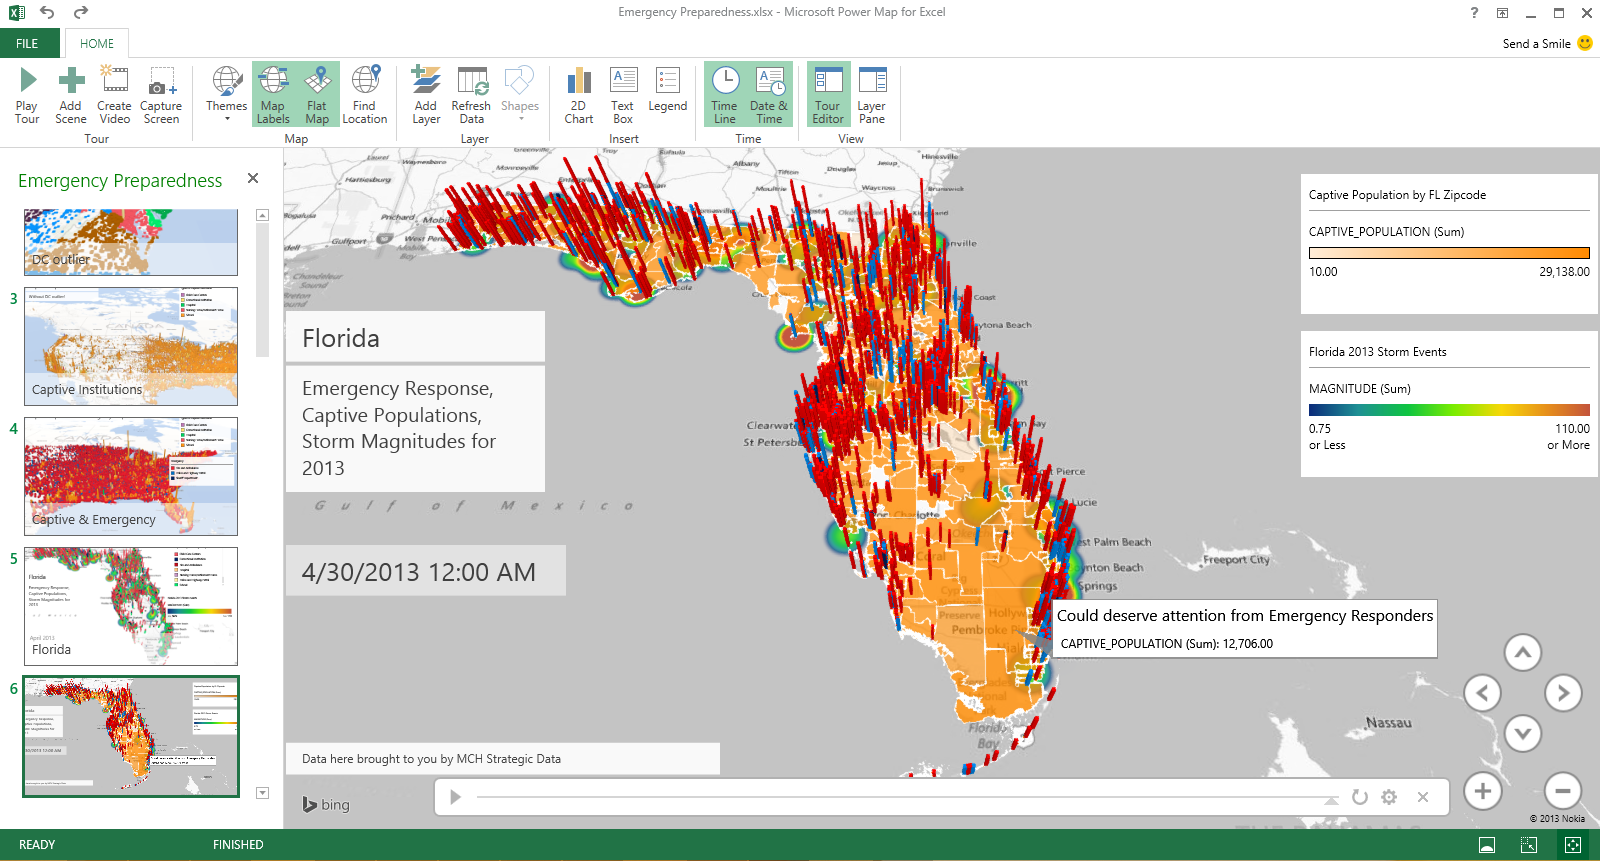 Ediblewildsus  Personable Power Map For Excel Now Generally Available Automatically Updated  With Extraordinary Power Map For Excel Now Generally Available Automatically Updated For Office  With Delectable Excel To Map Also Calculating Cpk In Excel In Addition Array In Excel Vba And Microsoft Excel Specialist As Well As How To Create Pivot Tables In Excel  Additionally Random Sampling Excel From Powerbimicrosoftcom With Ediblewildsus  Extraordinary Power Map For Excel Now Generally Available Automatically Updated  With Delectable Power Map For Excel Now Generally Available Automatically Updated For Office  And Personable Excel To Map Also Calculating Cpk In Excel In Addition Array In Excel Vba From Powerbimicrosoftcom